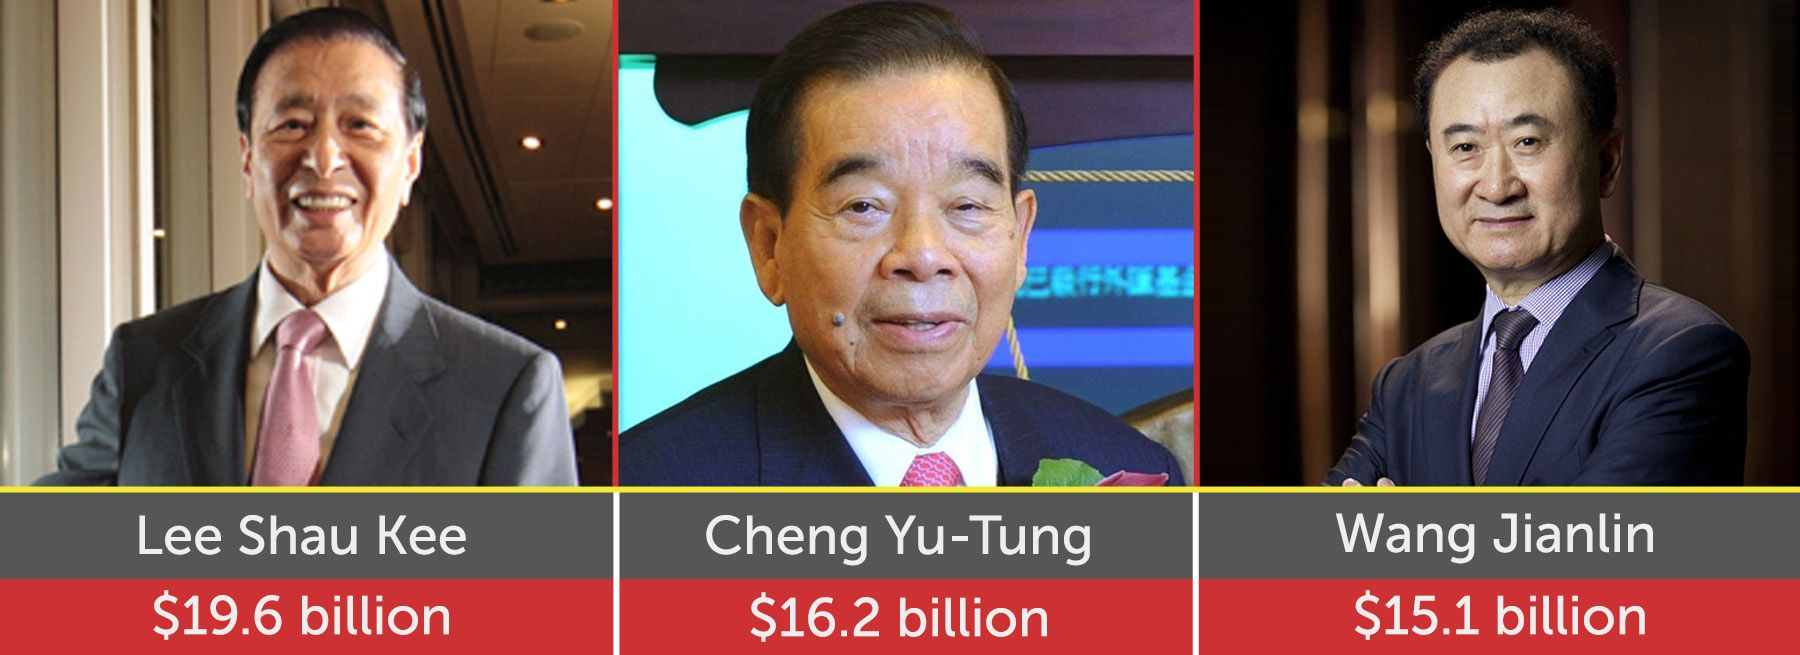 13 out of world's 20 richest real estate billionaires are